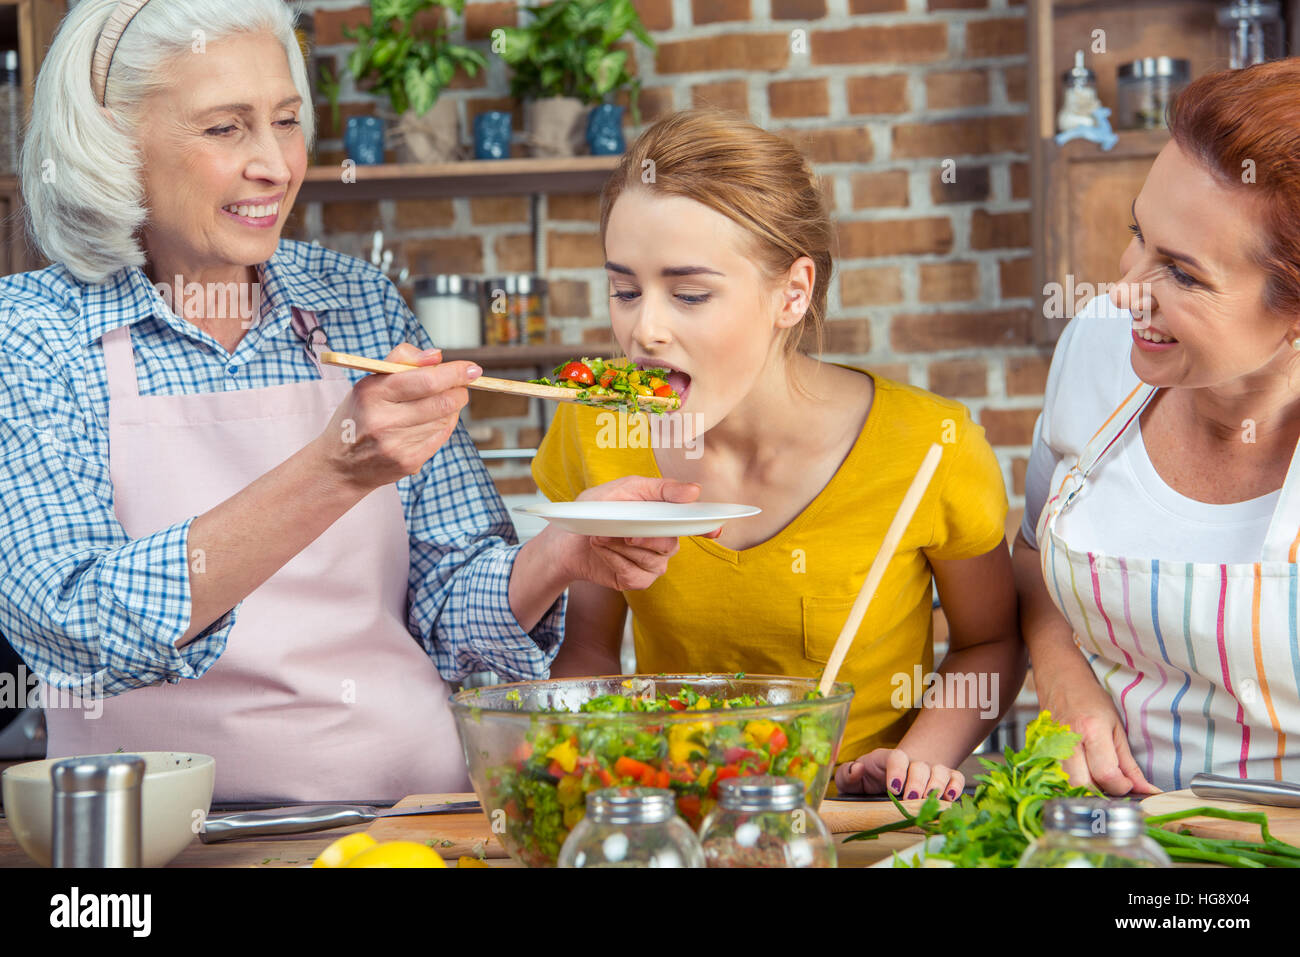 Young woman tasting fresh vegetable salad while standing with mother and grandmother in kitchen - Stock Image